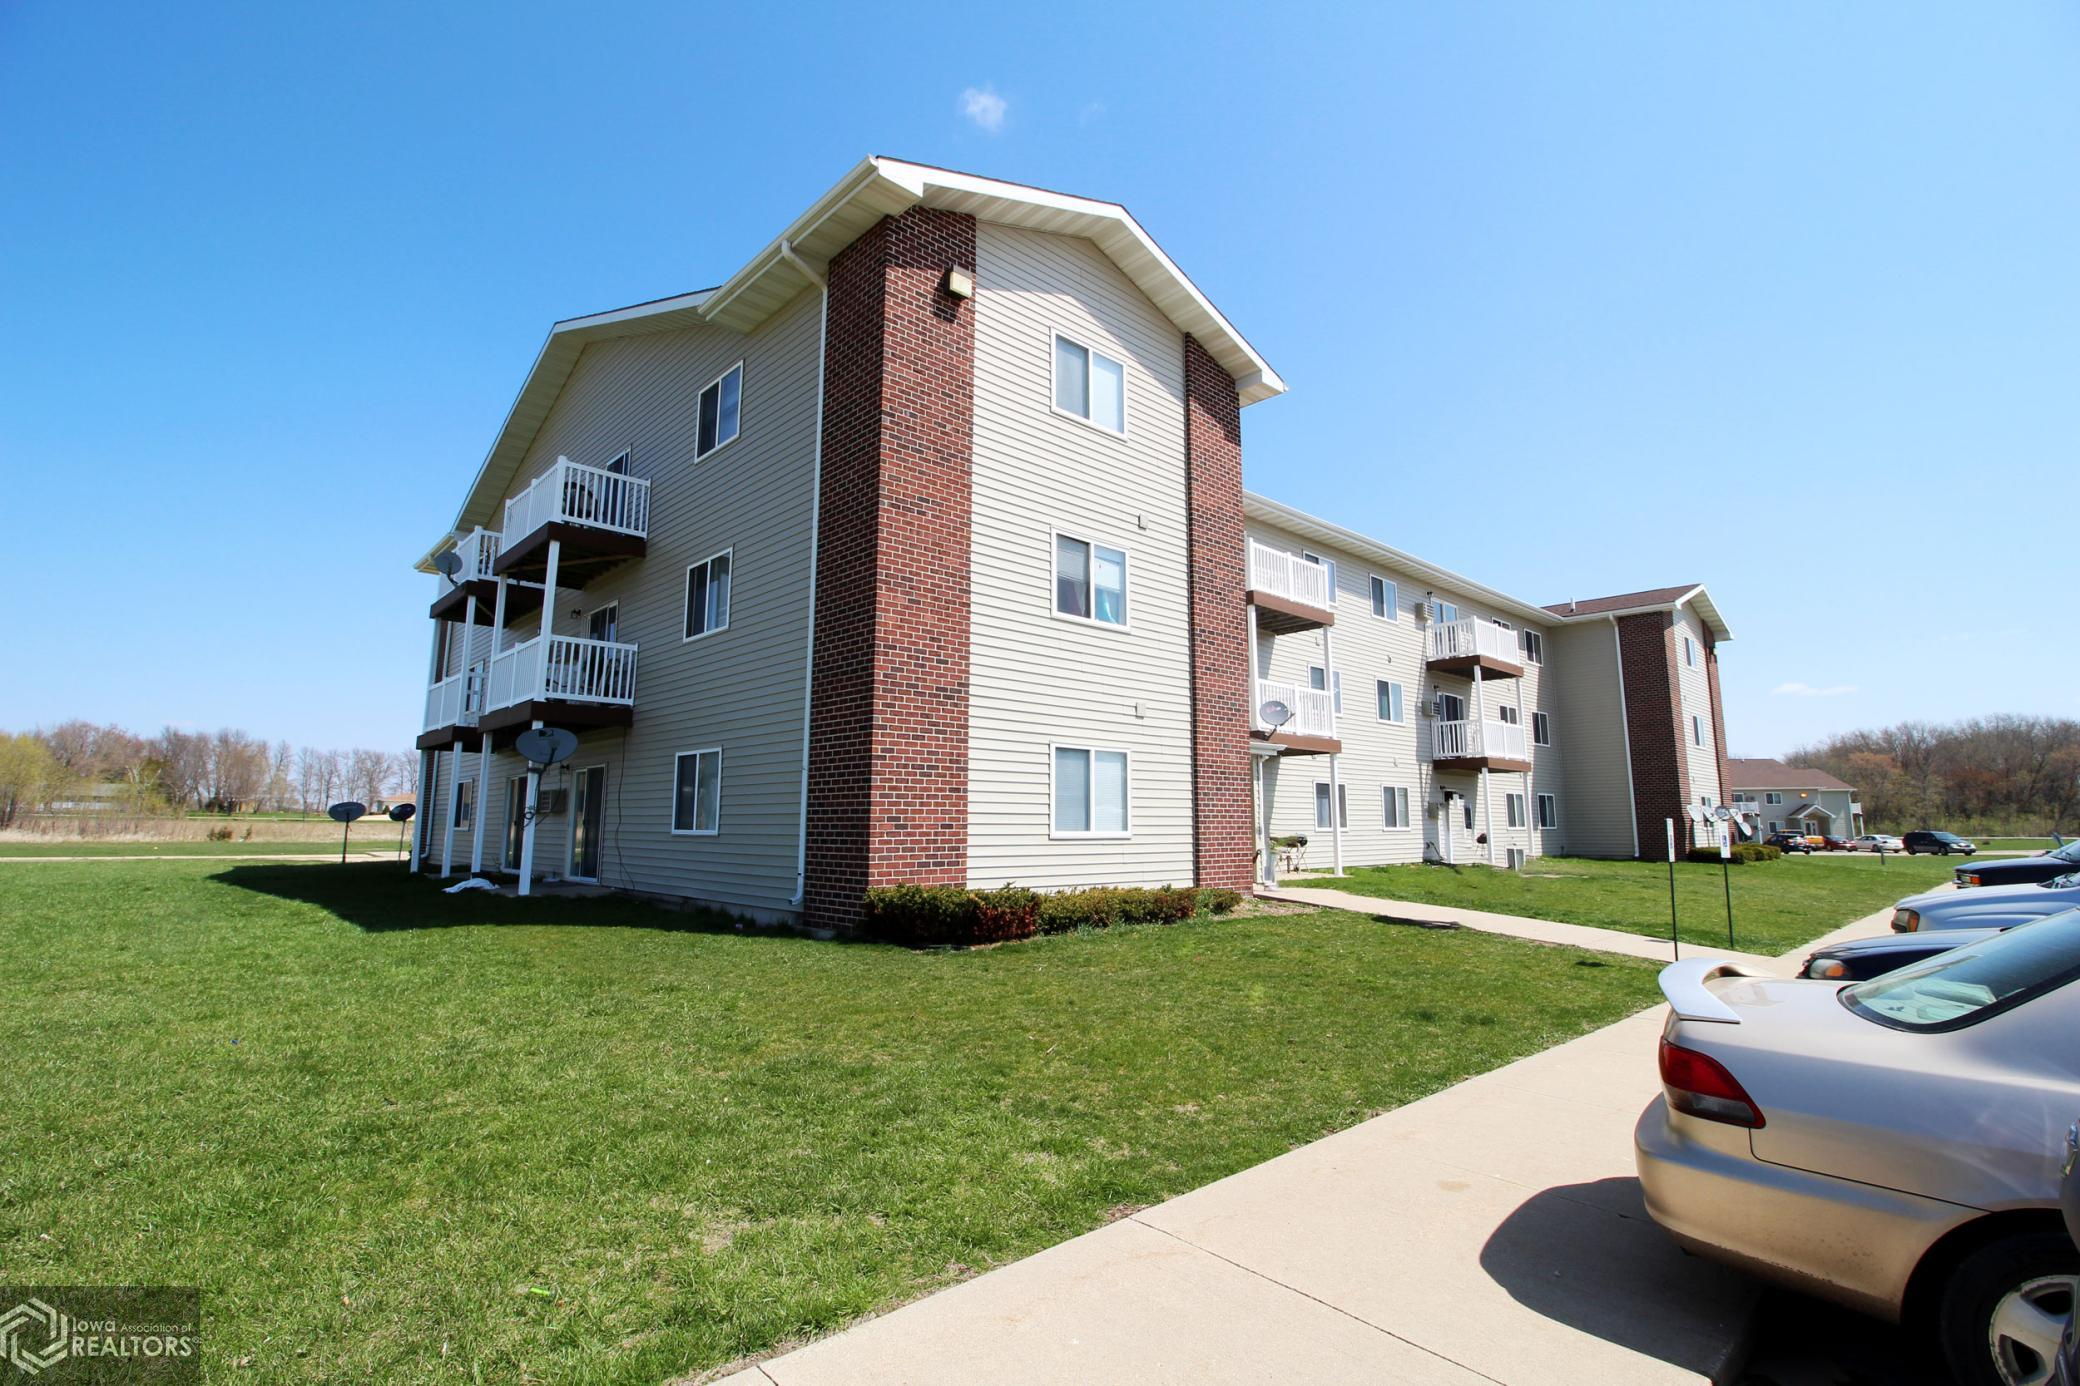 400 13th, Oelwein, Iowa 50662-4749, 2 Bedrooms Bedrooms, ,3 BathroomsBathrooms,Multi-family (2-4 Units),For Sale,13th,5753149